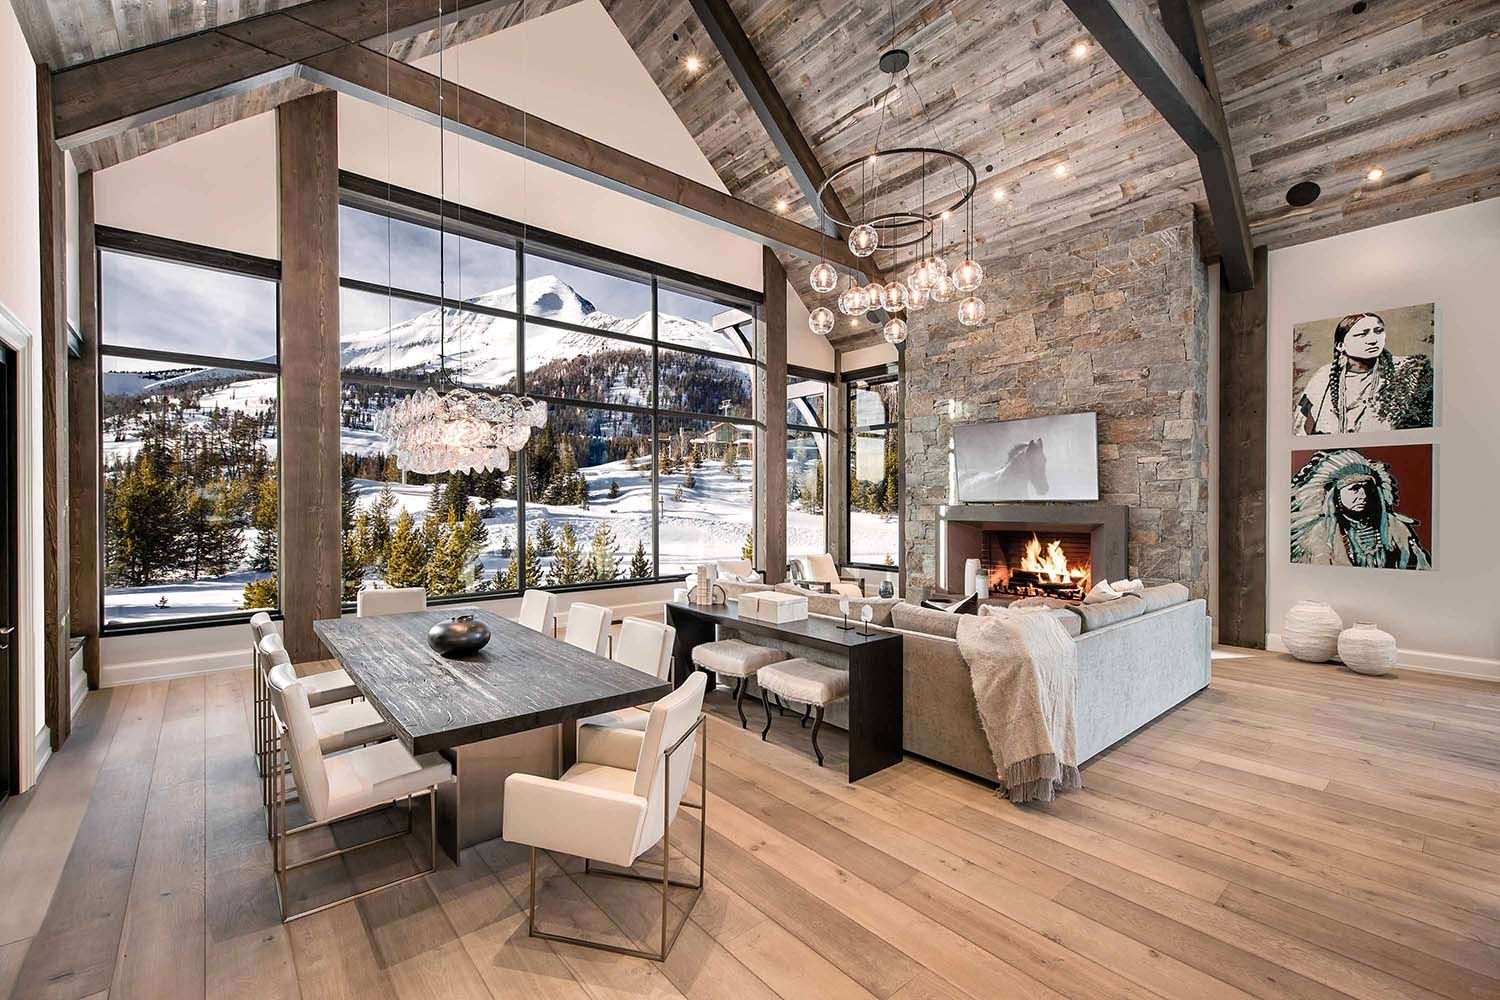 Breathtaking mountain modern home in Montana with inviting